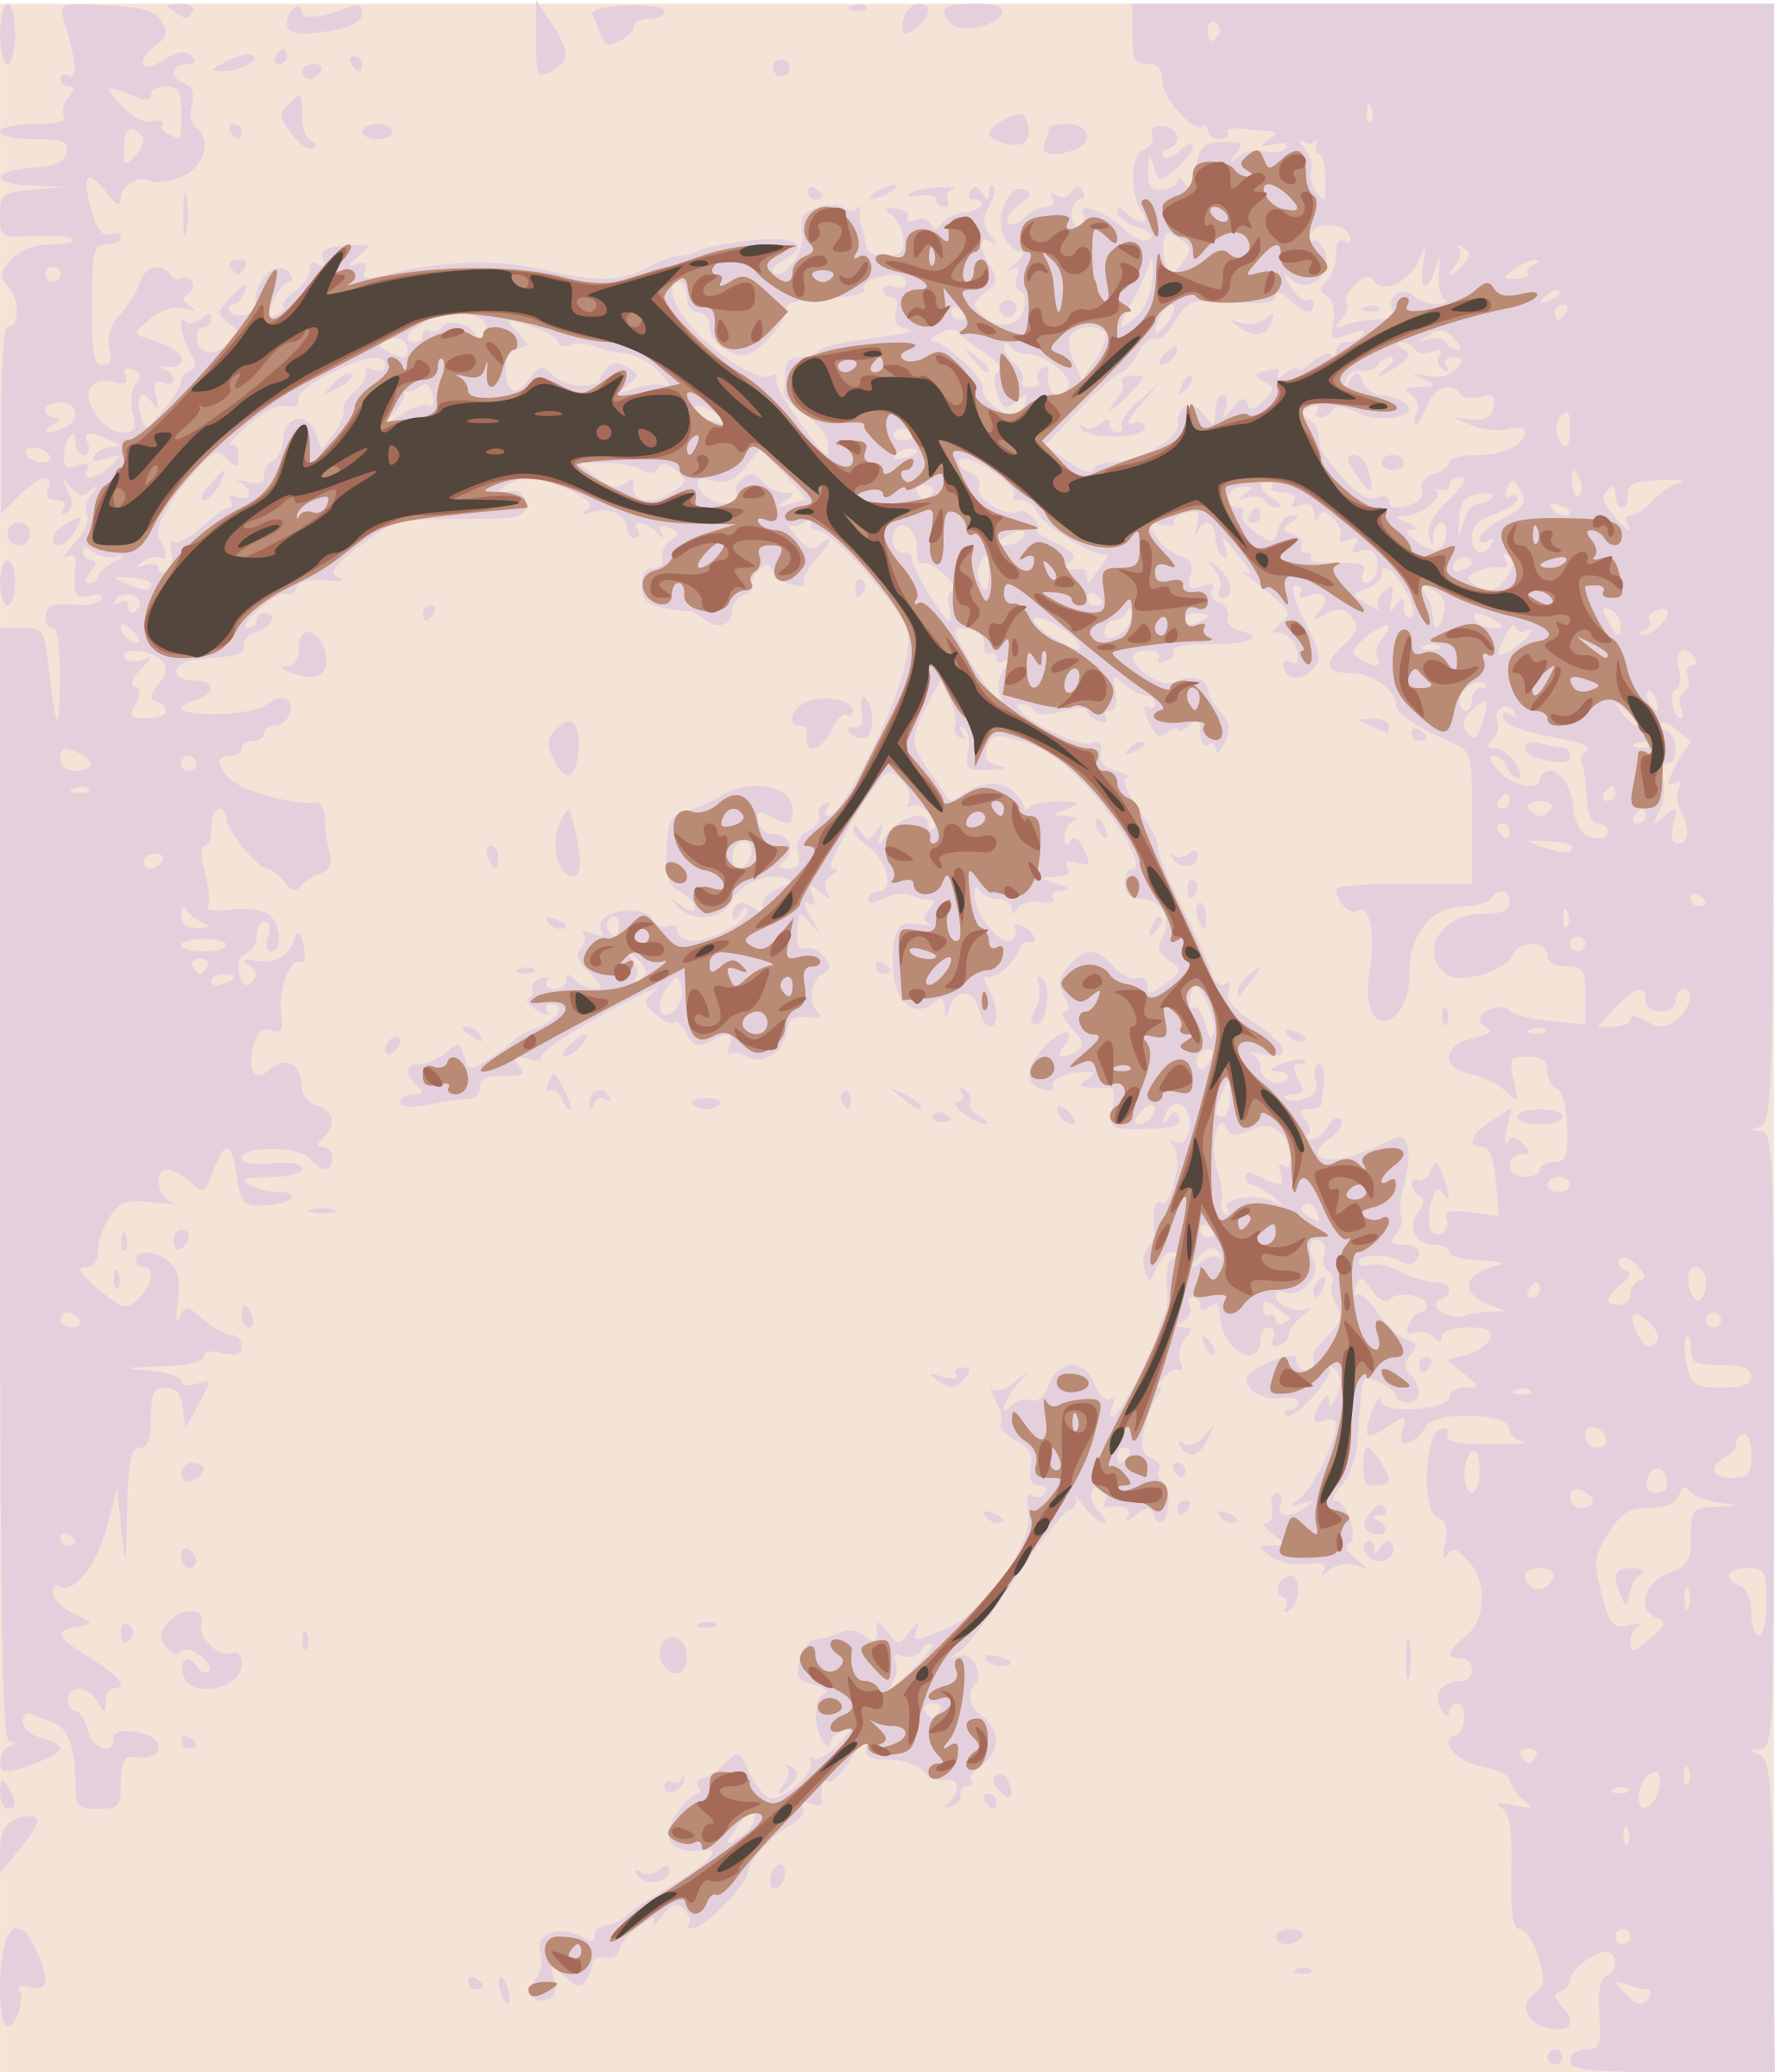 Plum Blossoms by j4p4n